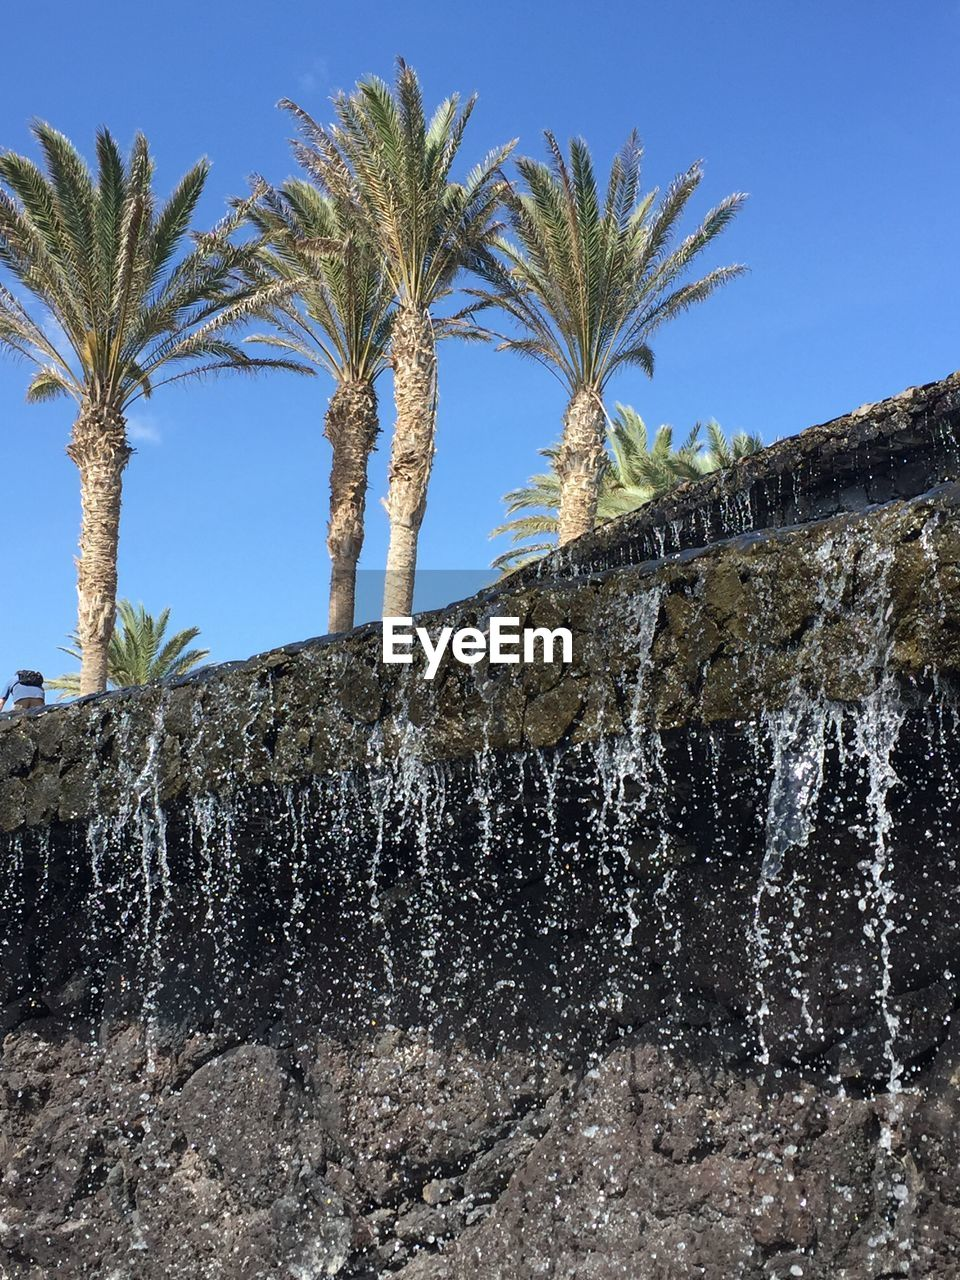 tree, plant, palm tree, tropical climate, sky, nature, water, growth, no people, day, clear sky, low angle view, outdoors, beauty in nature, blue, sunlight, scenics - nature, motion, waterfall, flowing water